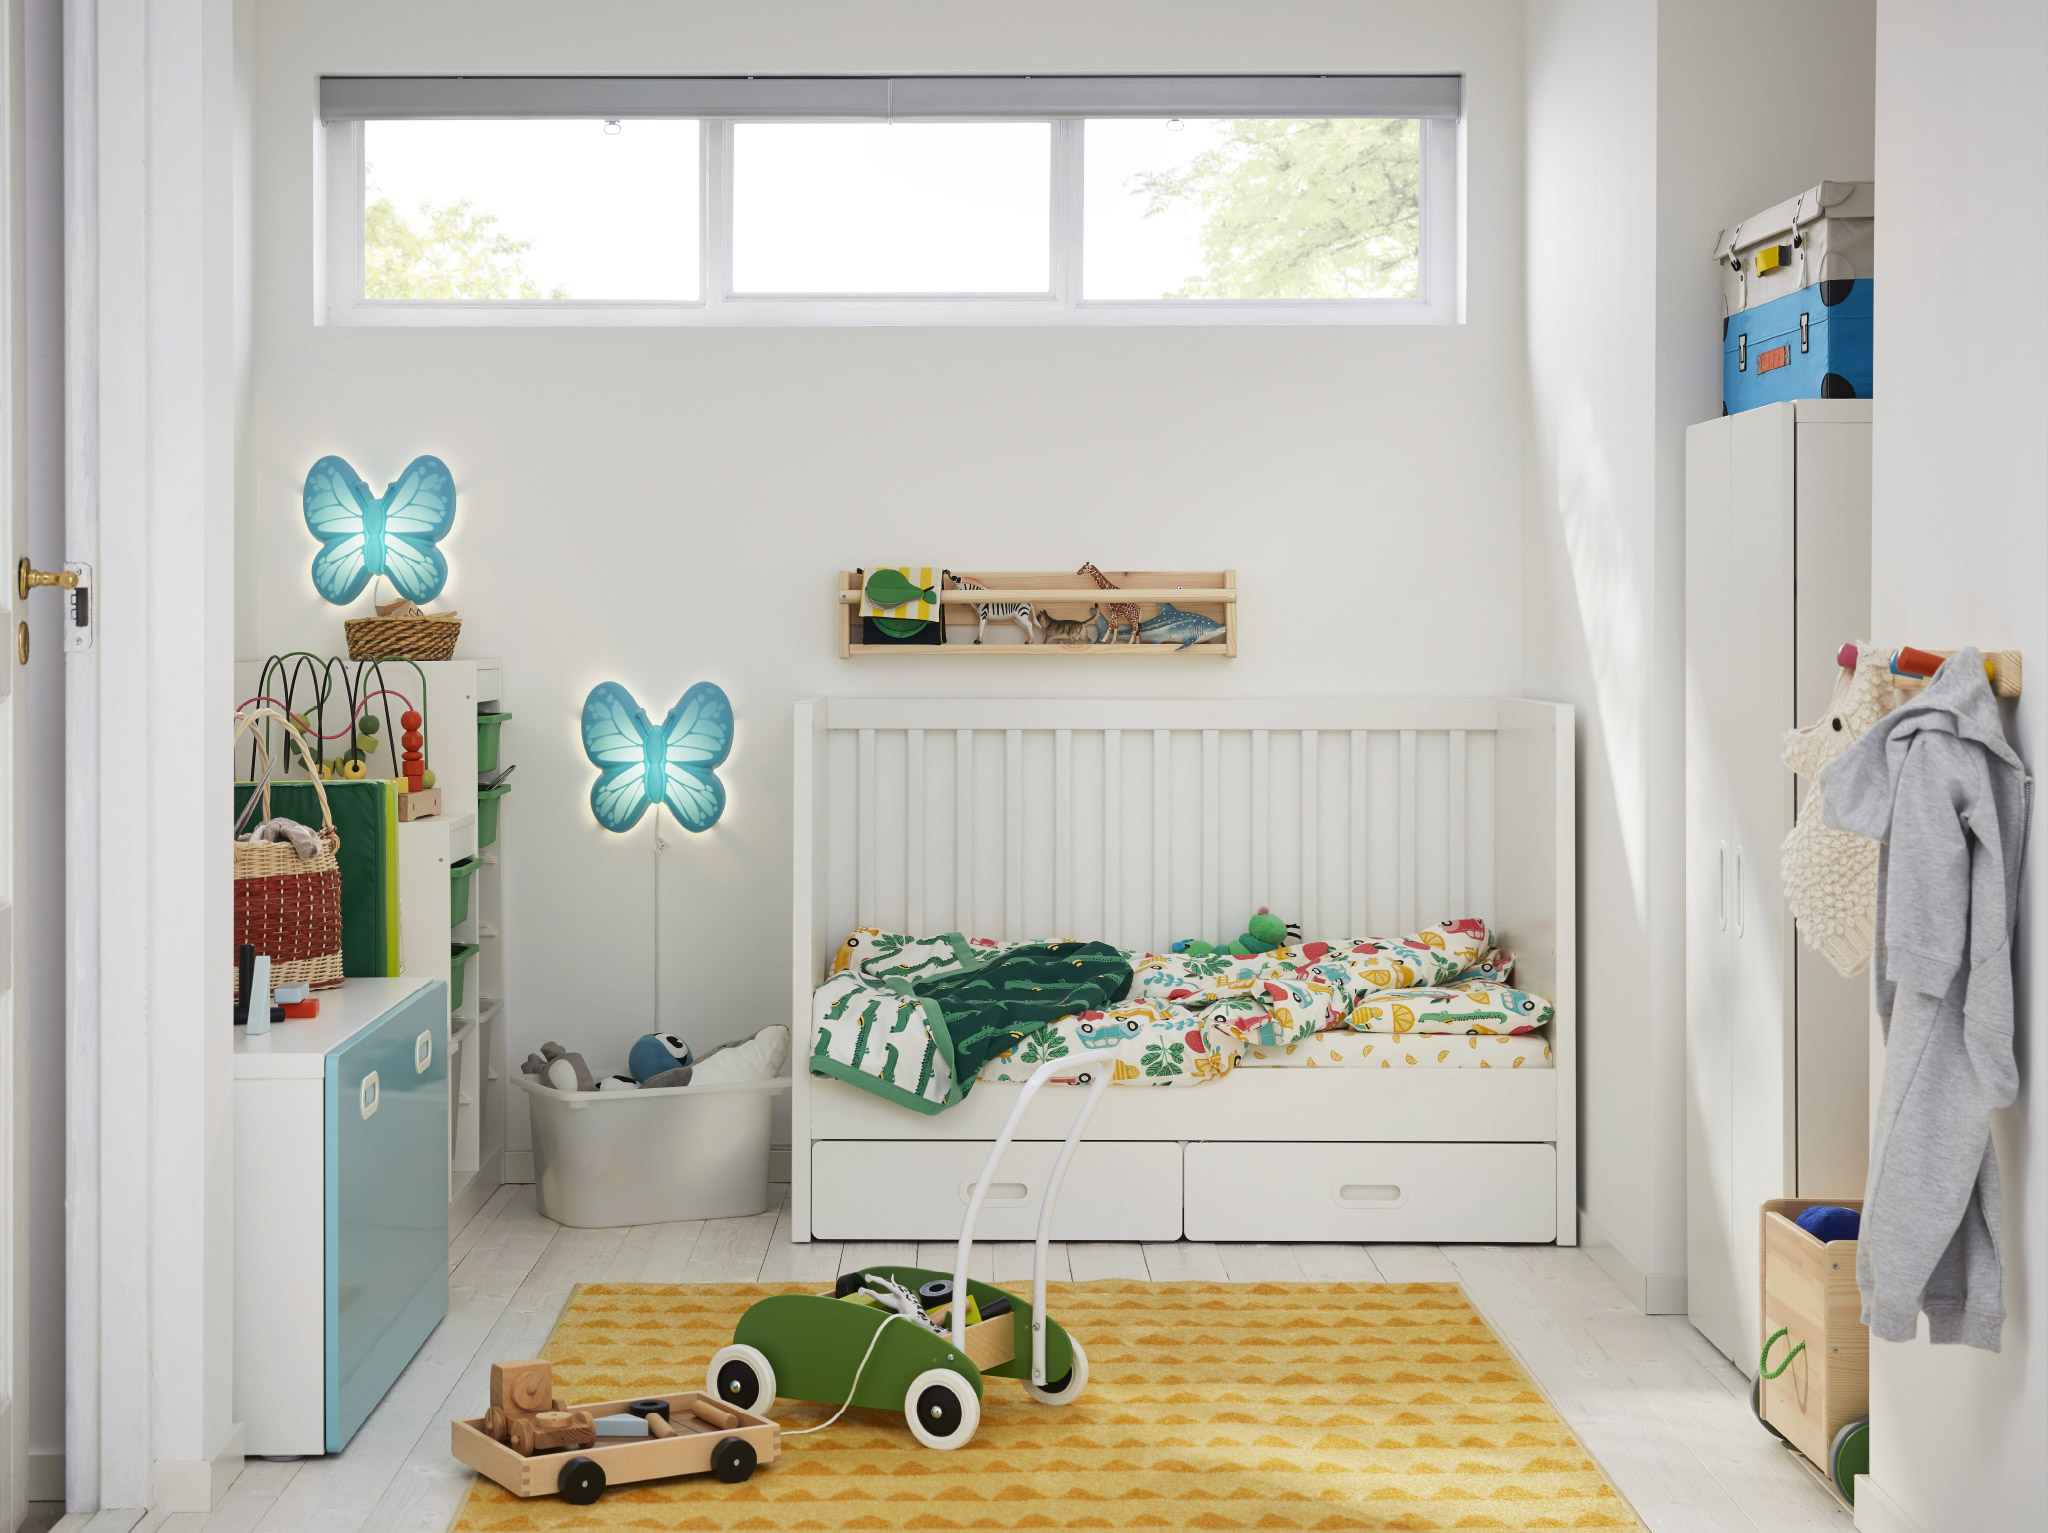 A space for play and rest